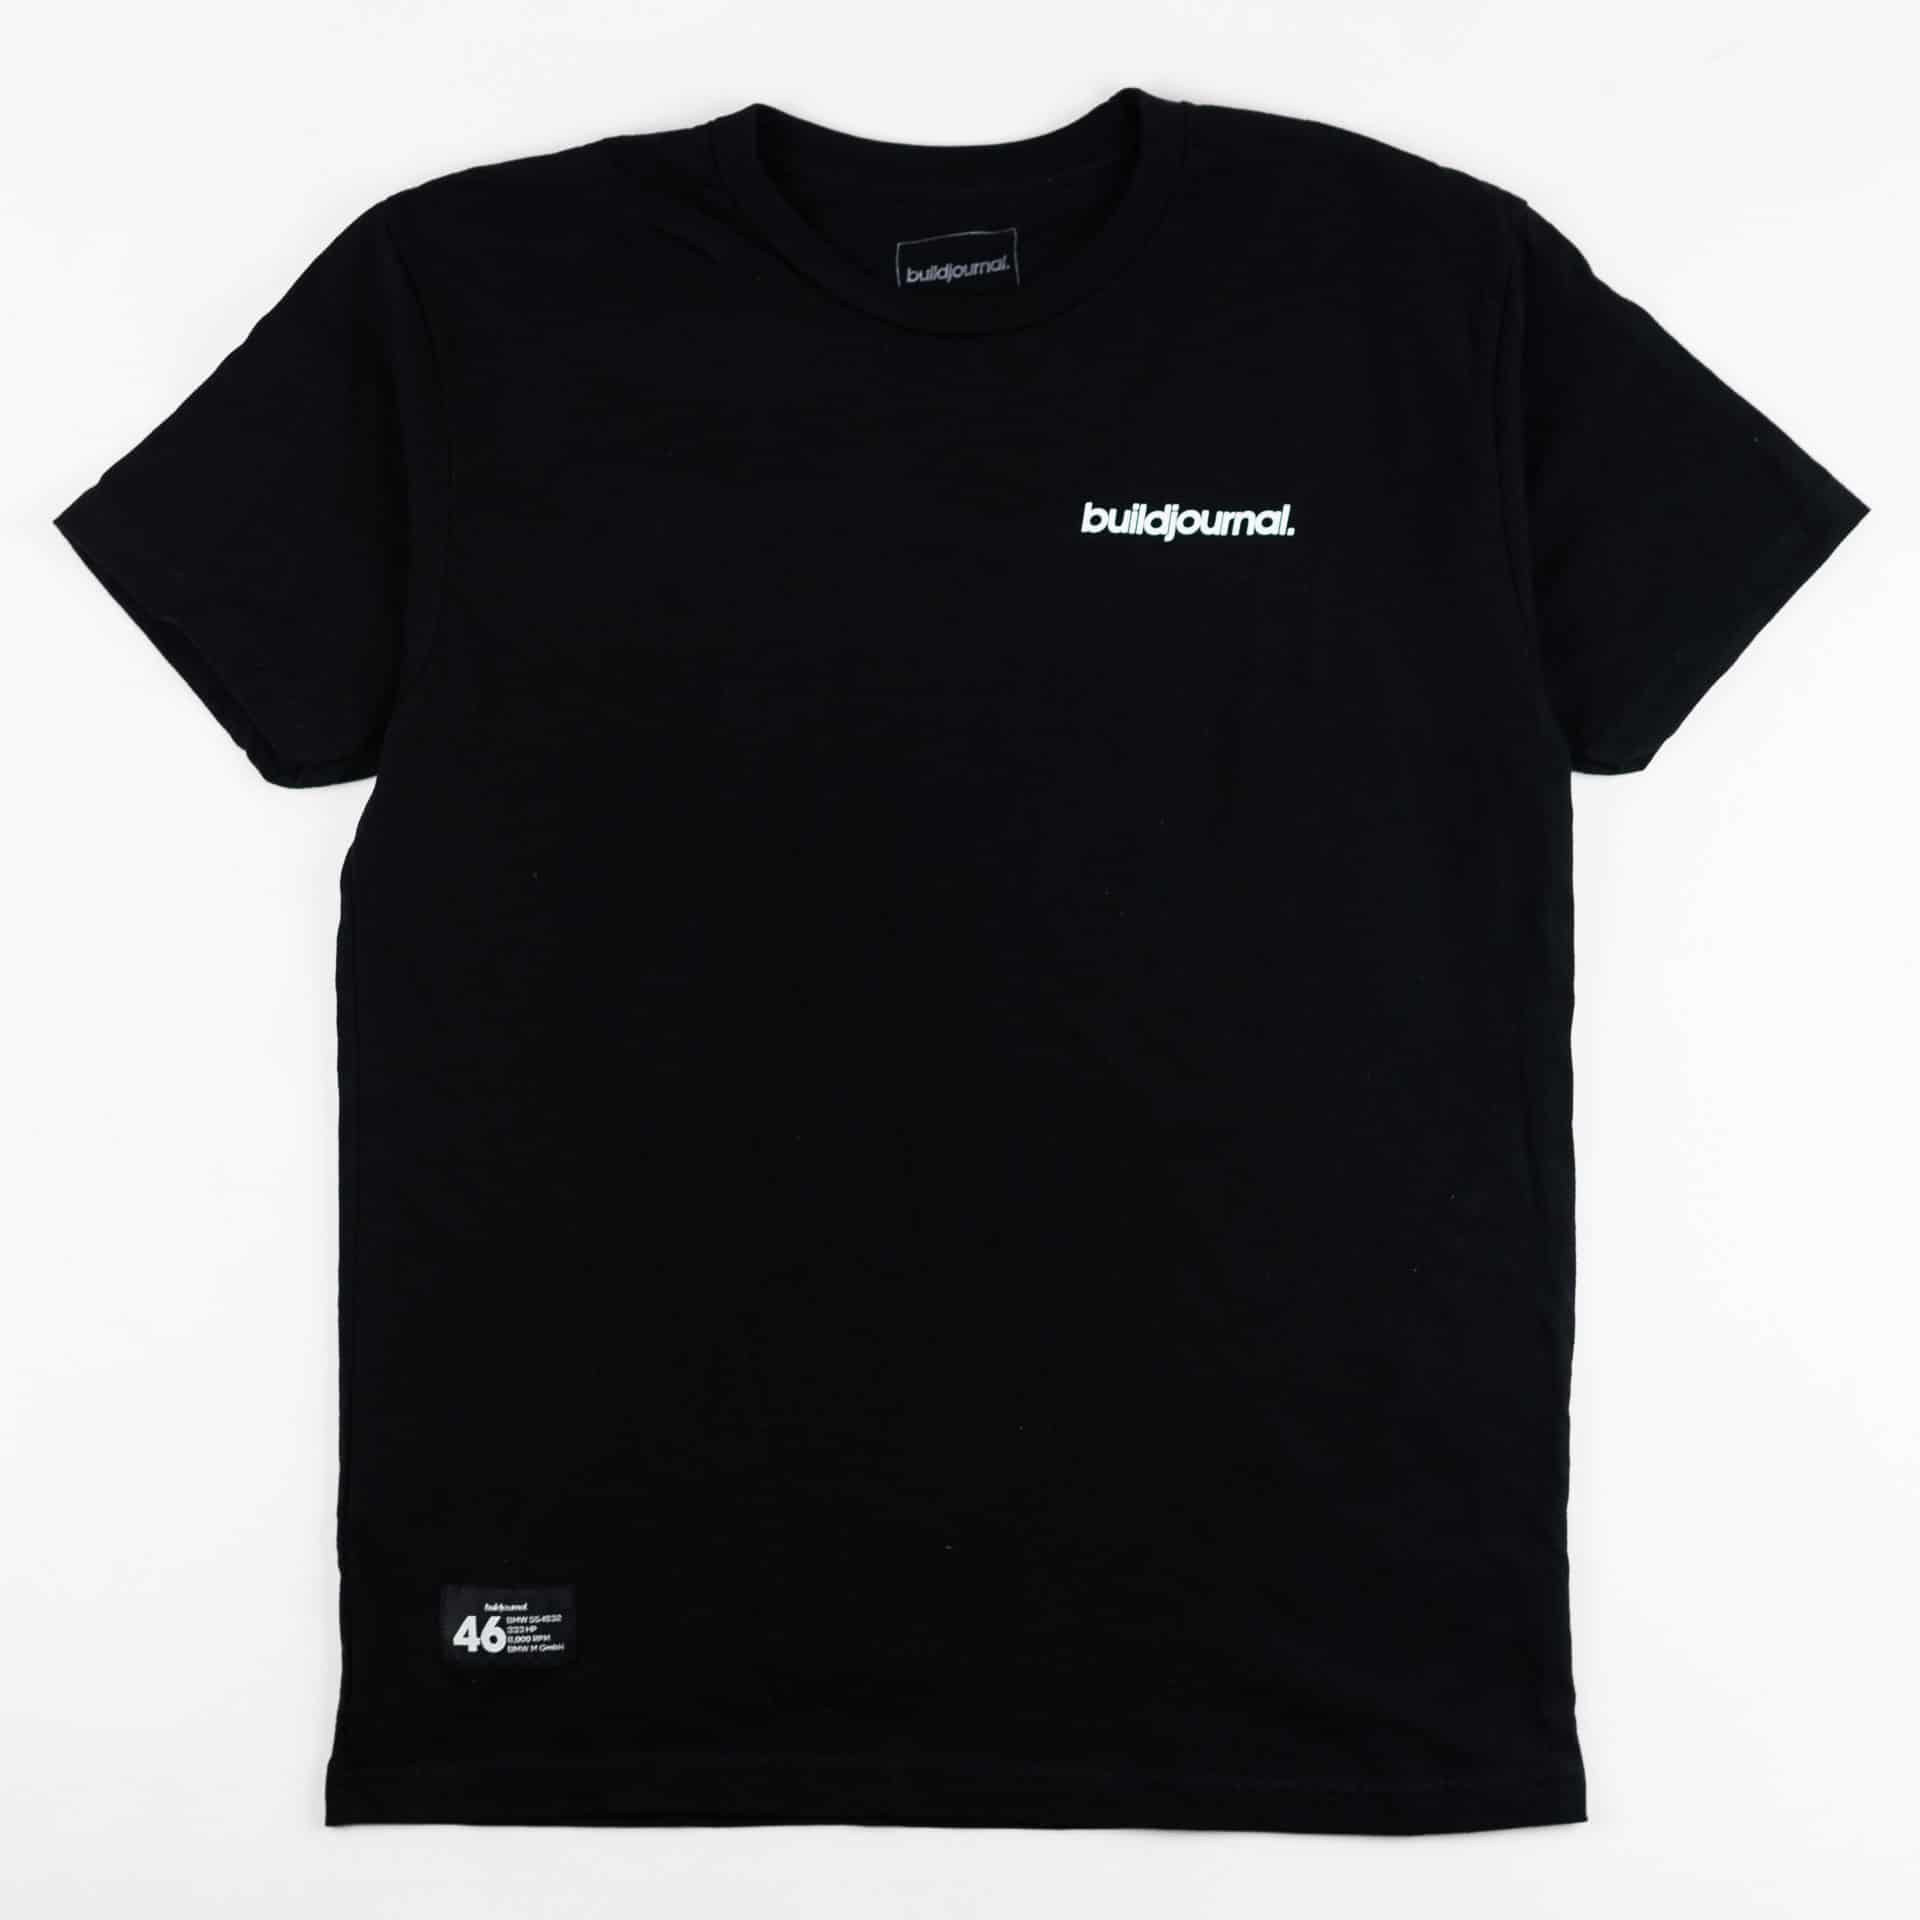 Buildjournal Signature Tee